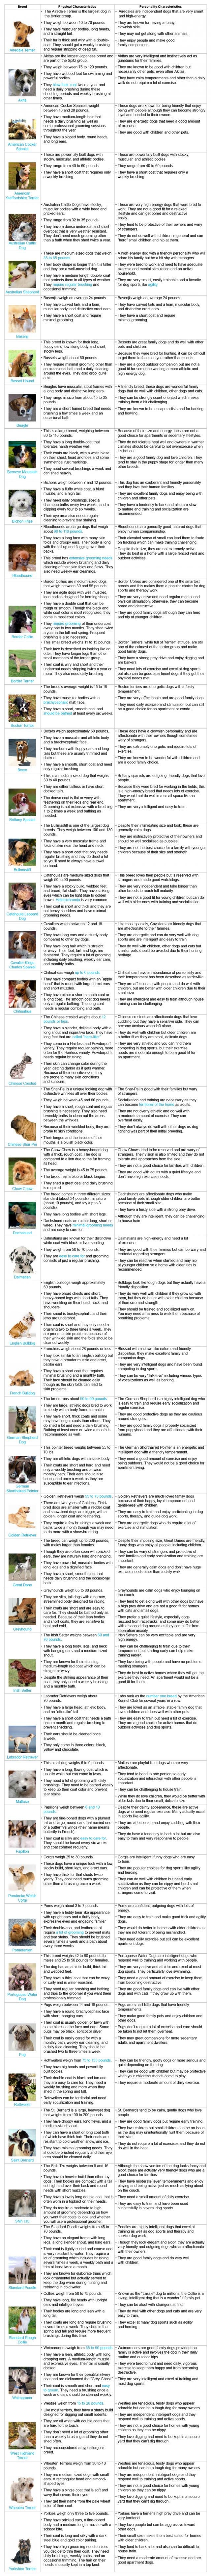 Dog Breed Characteristics